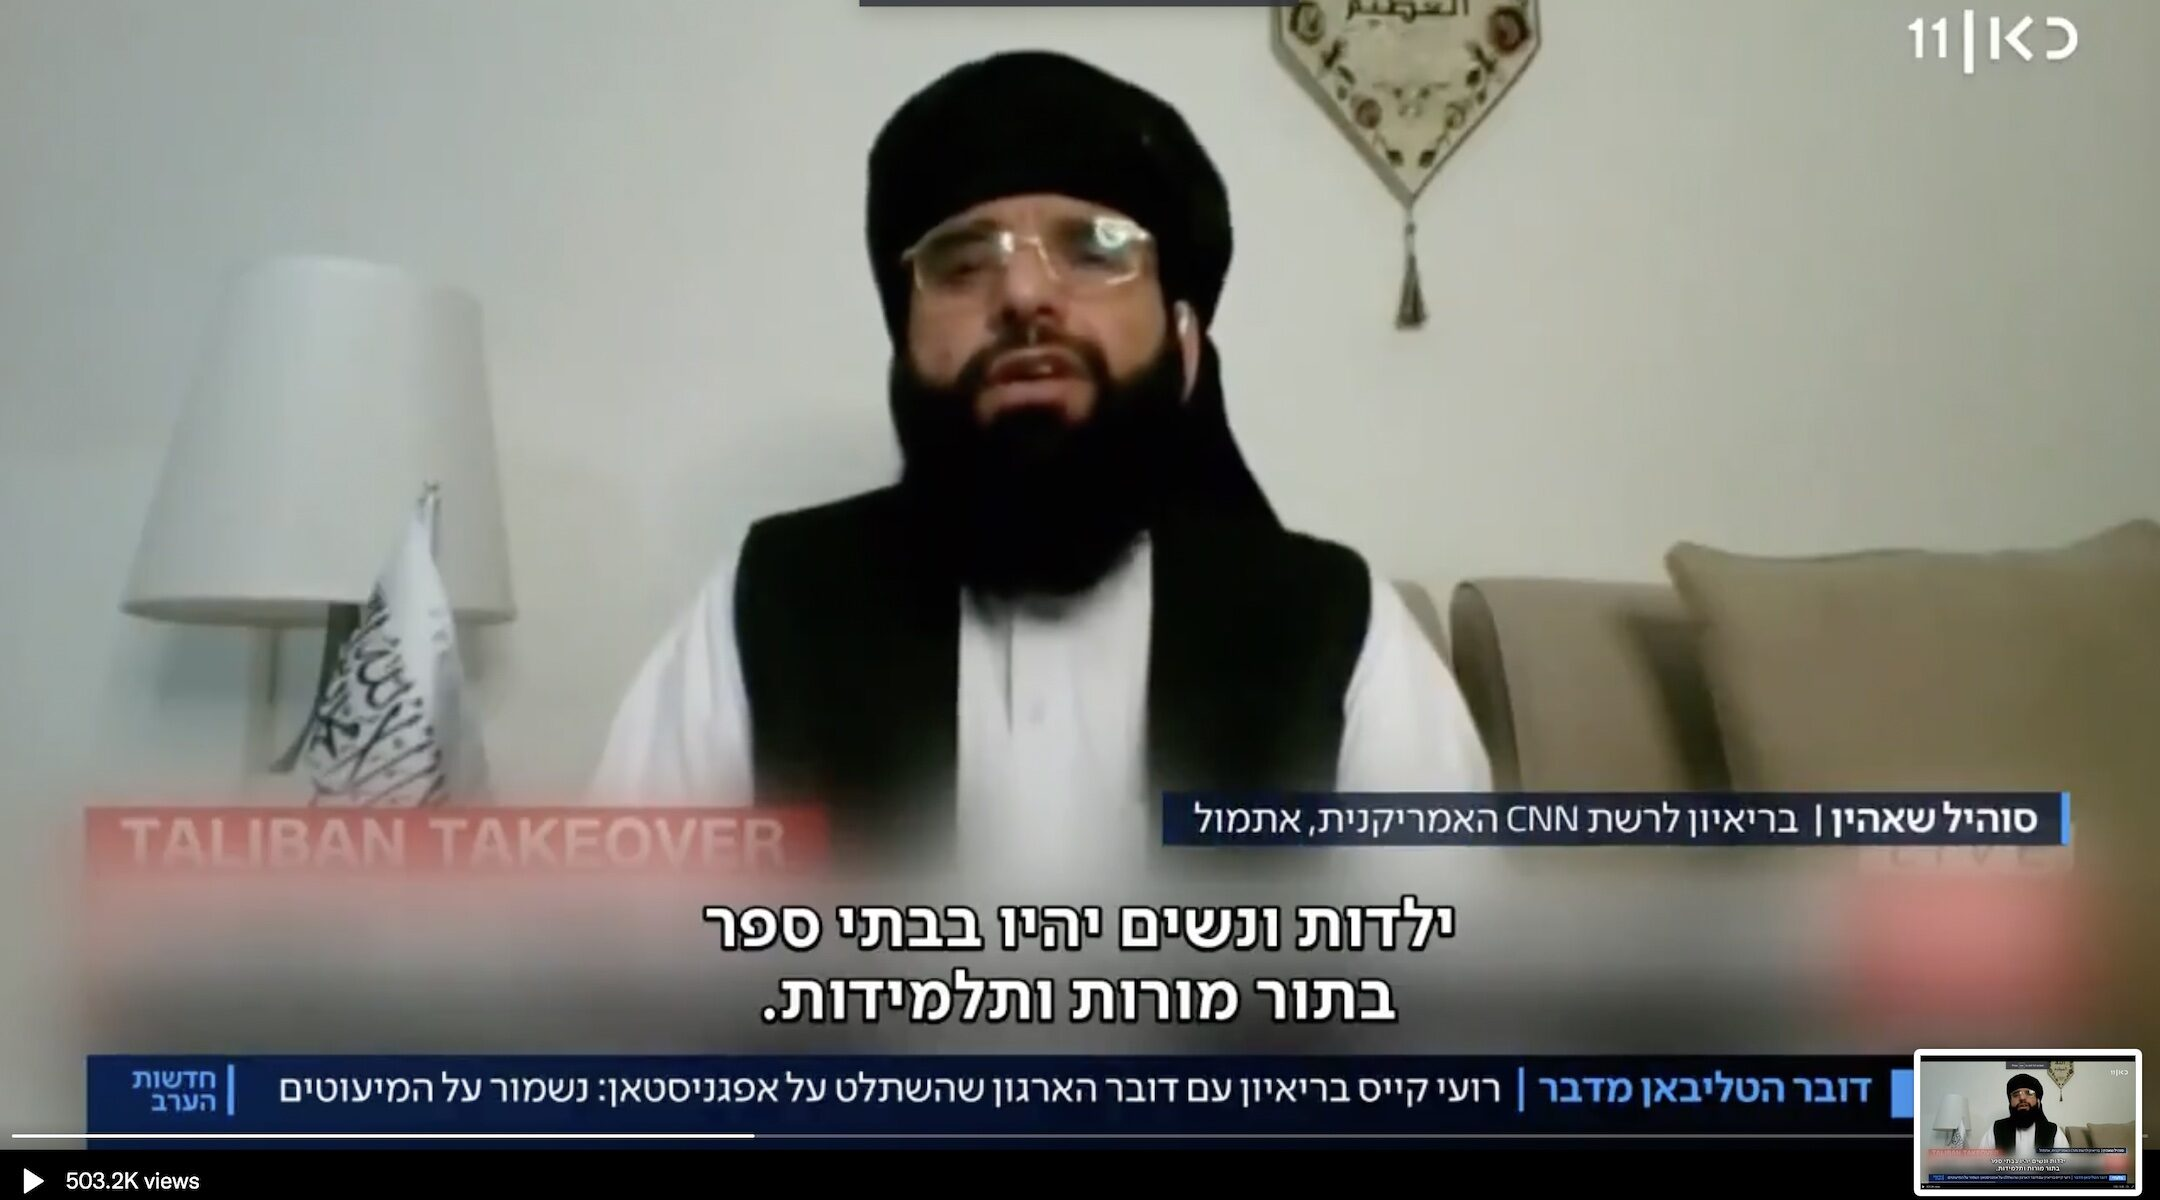 Taliban spokesman Suhail Shaheen in an interview with the Israeli broadcaster Kan. (Screenshot)